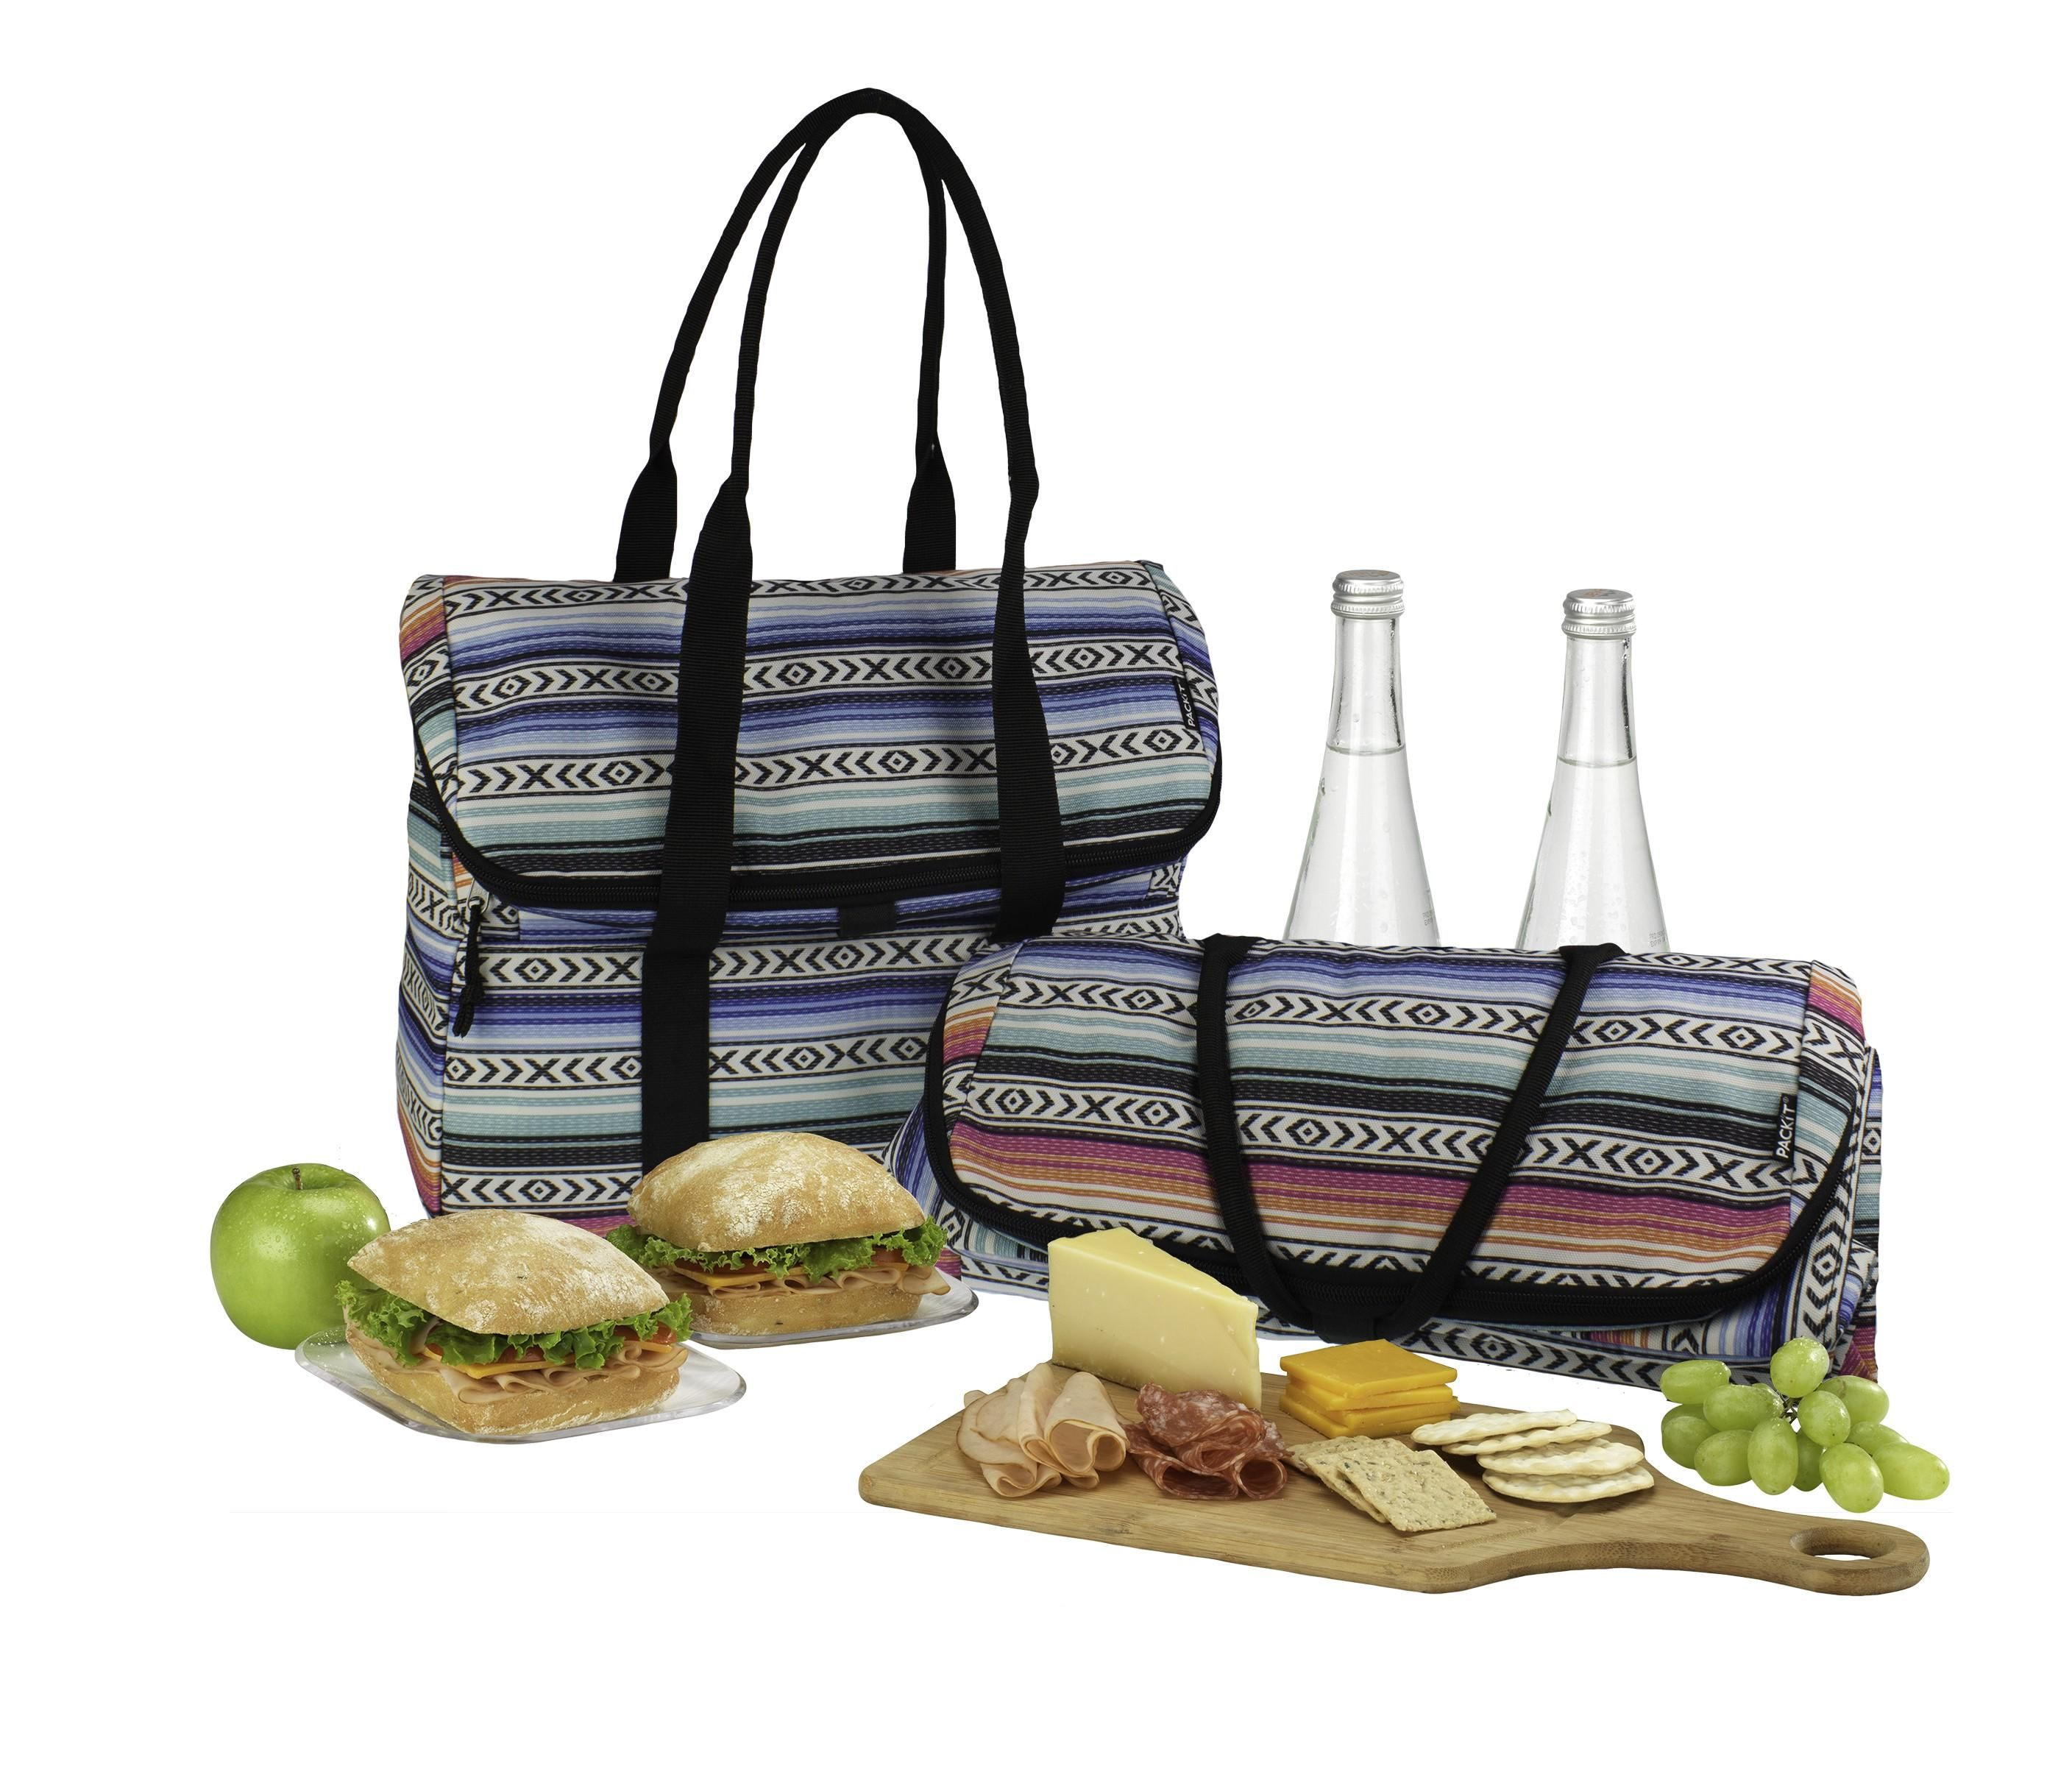 Picnic Totes Don T Get Any More Fashionable Or Functional Than This Stylish Shoulder Bag Its Top Flap Opens To Reveal A Ious Zippered Cooling